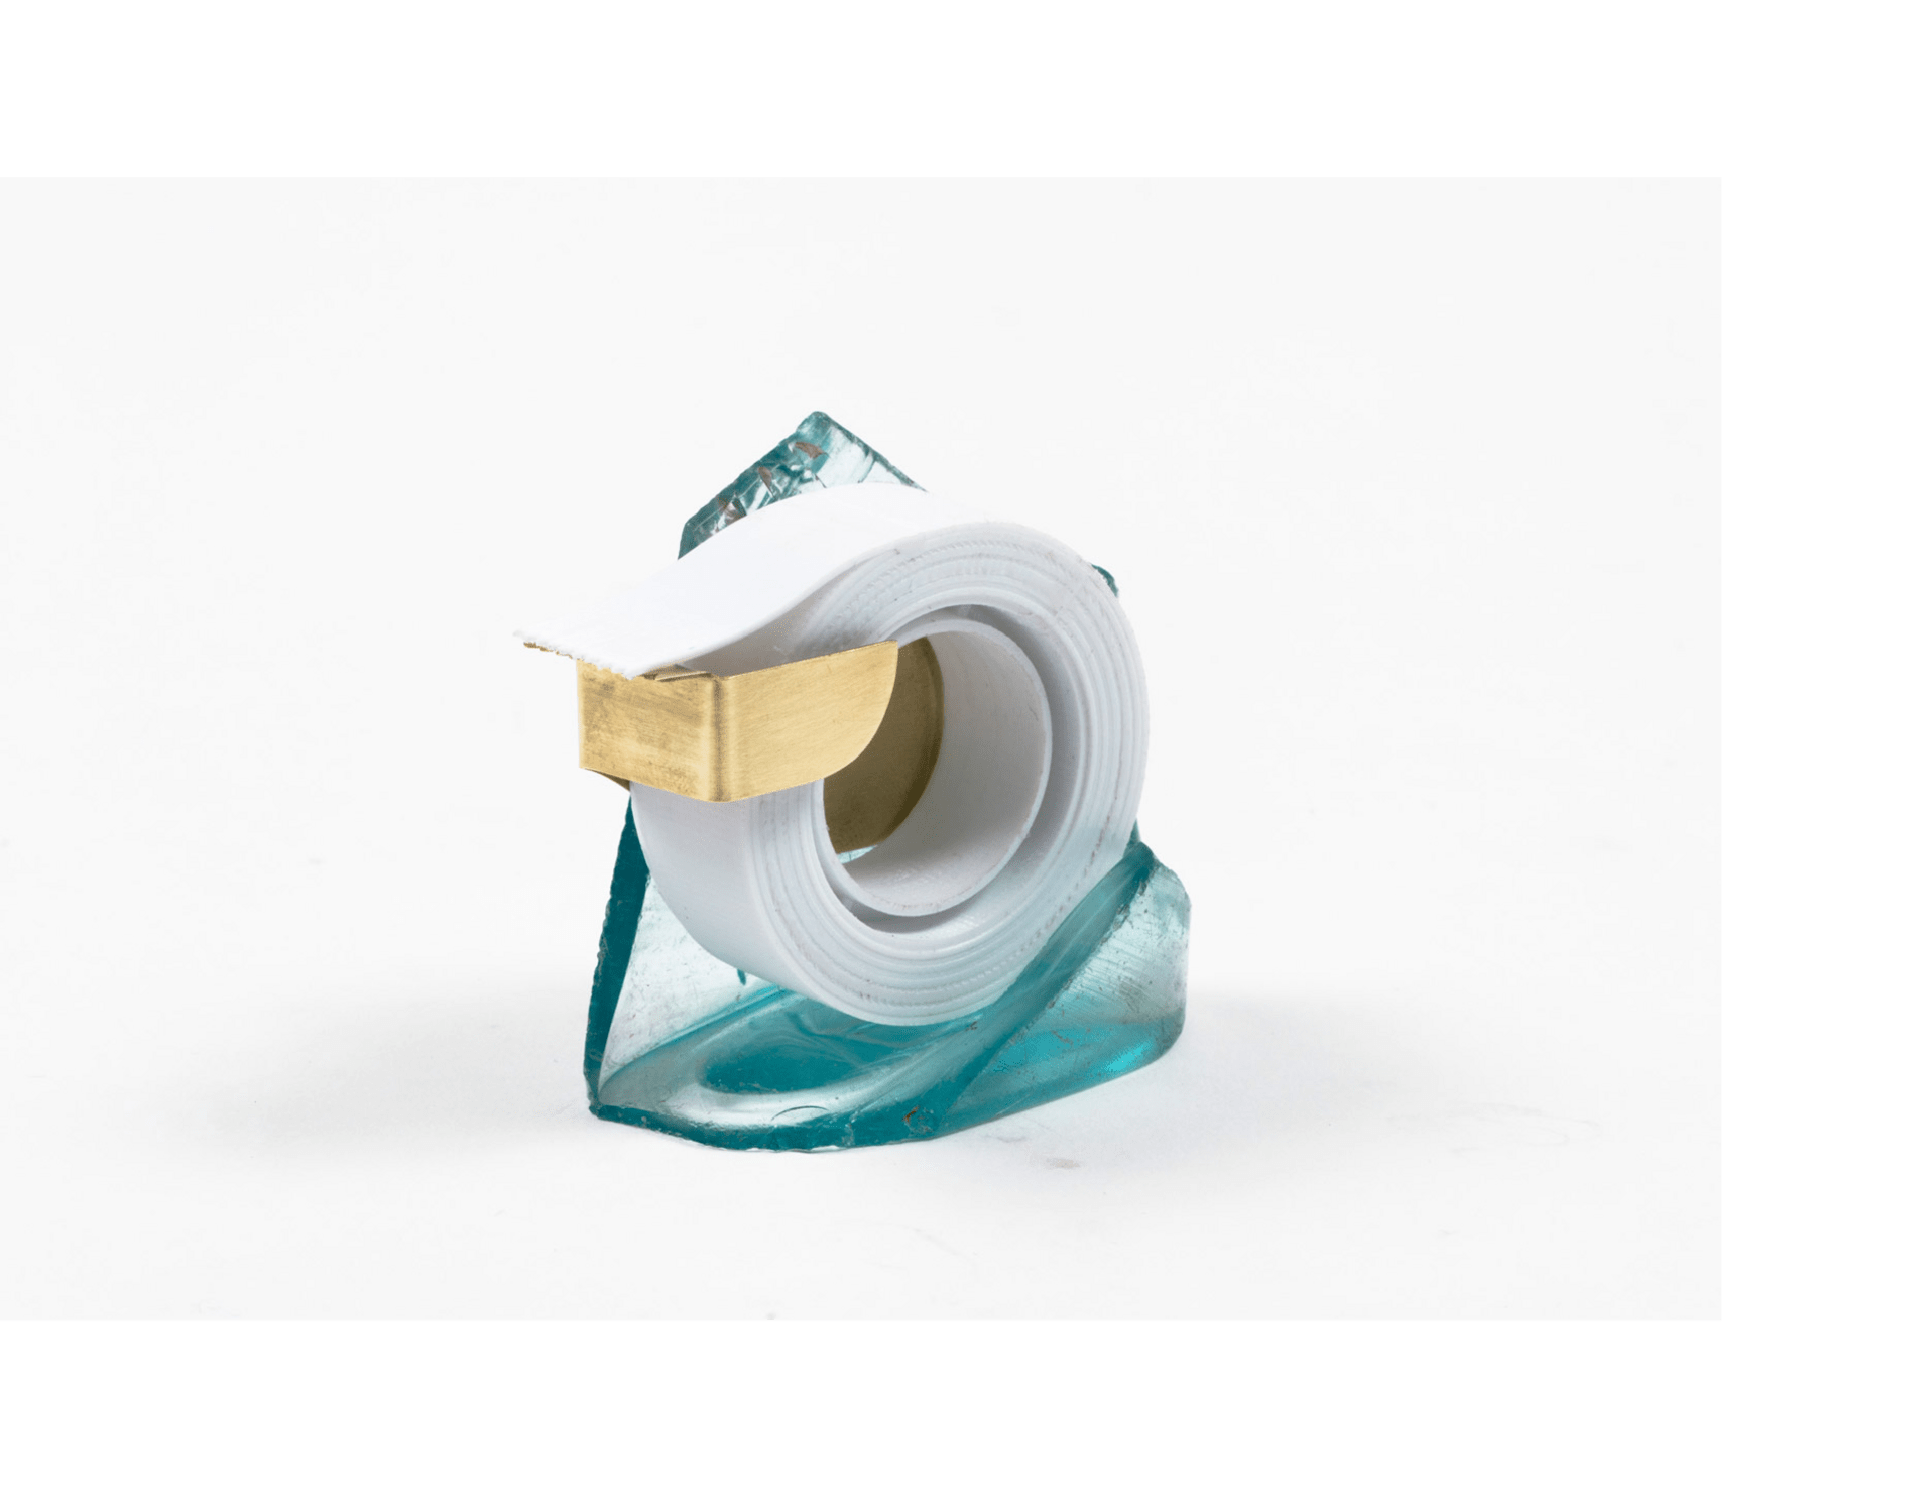 Tape dispenser from gin bottle